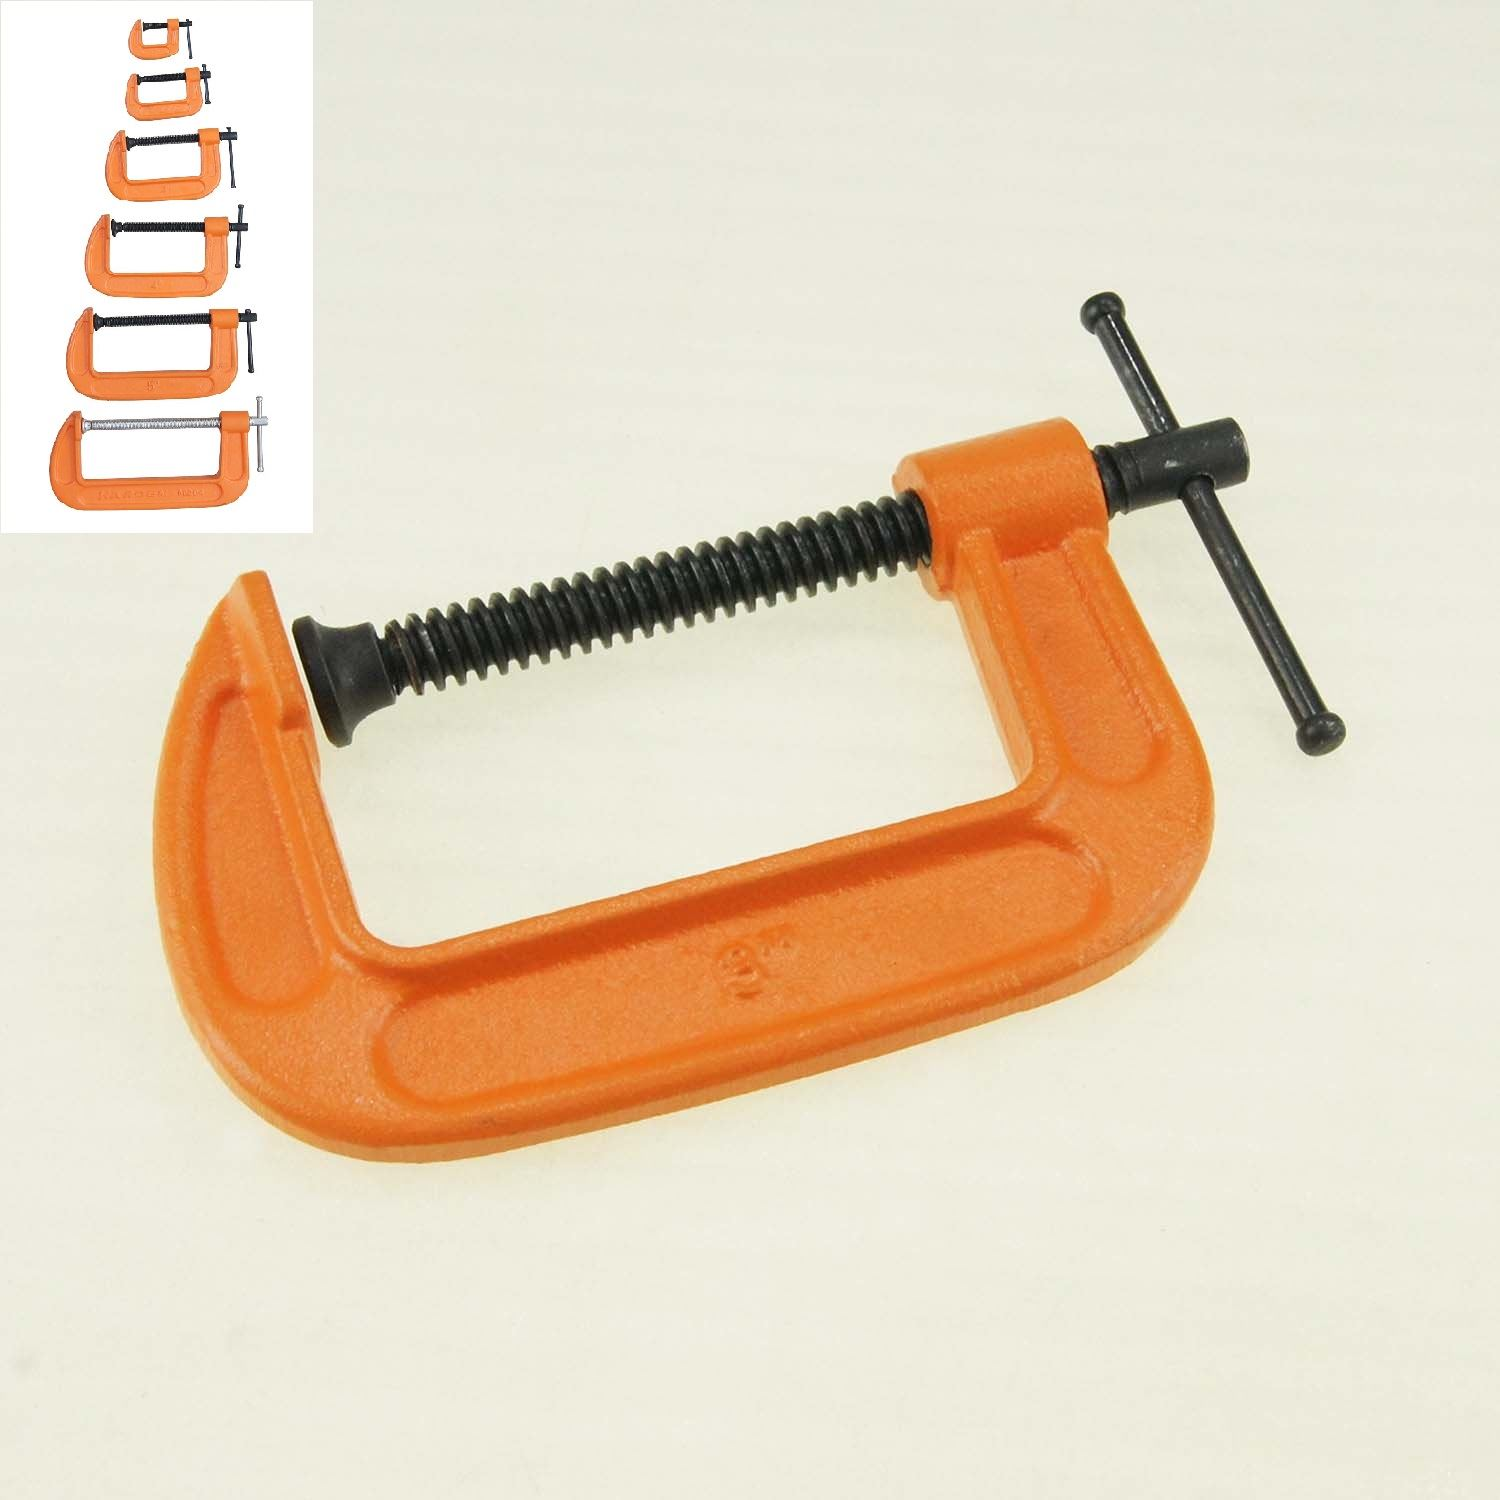 313386 Heavy Duty Vice C Clamp For Wood Steel Carpenter Tools 1 To